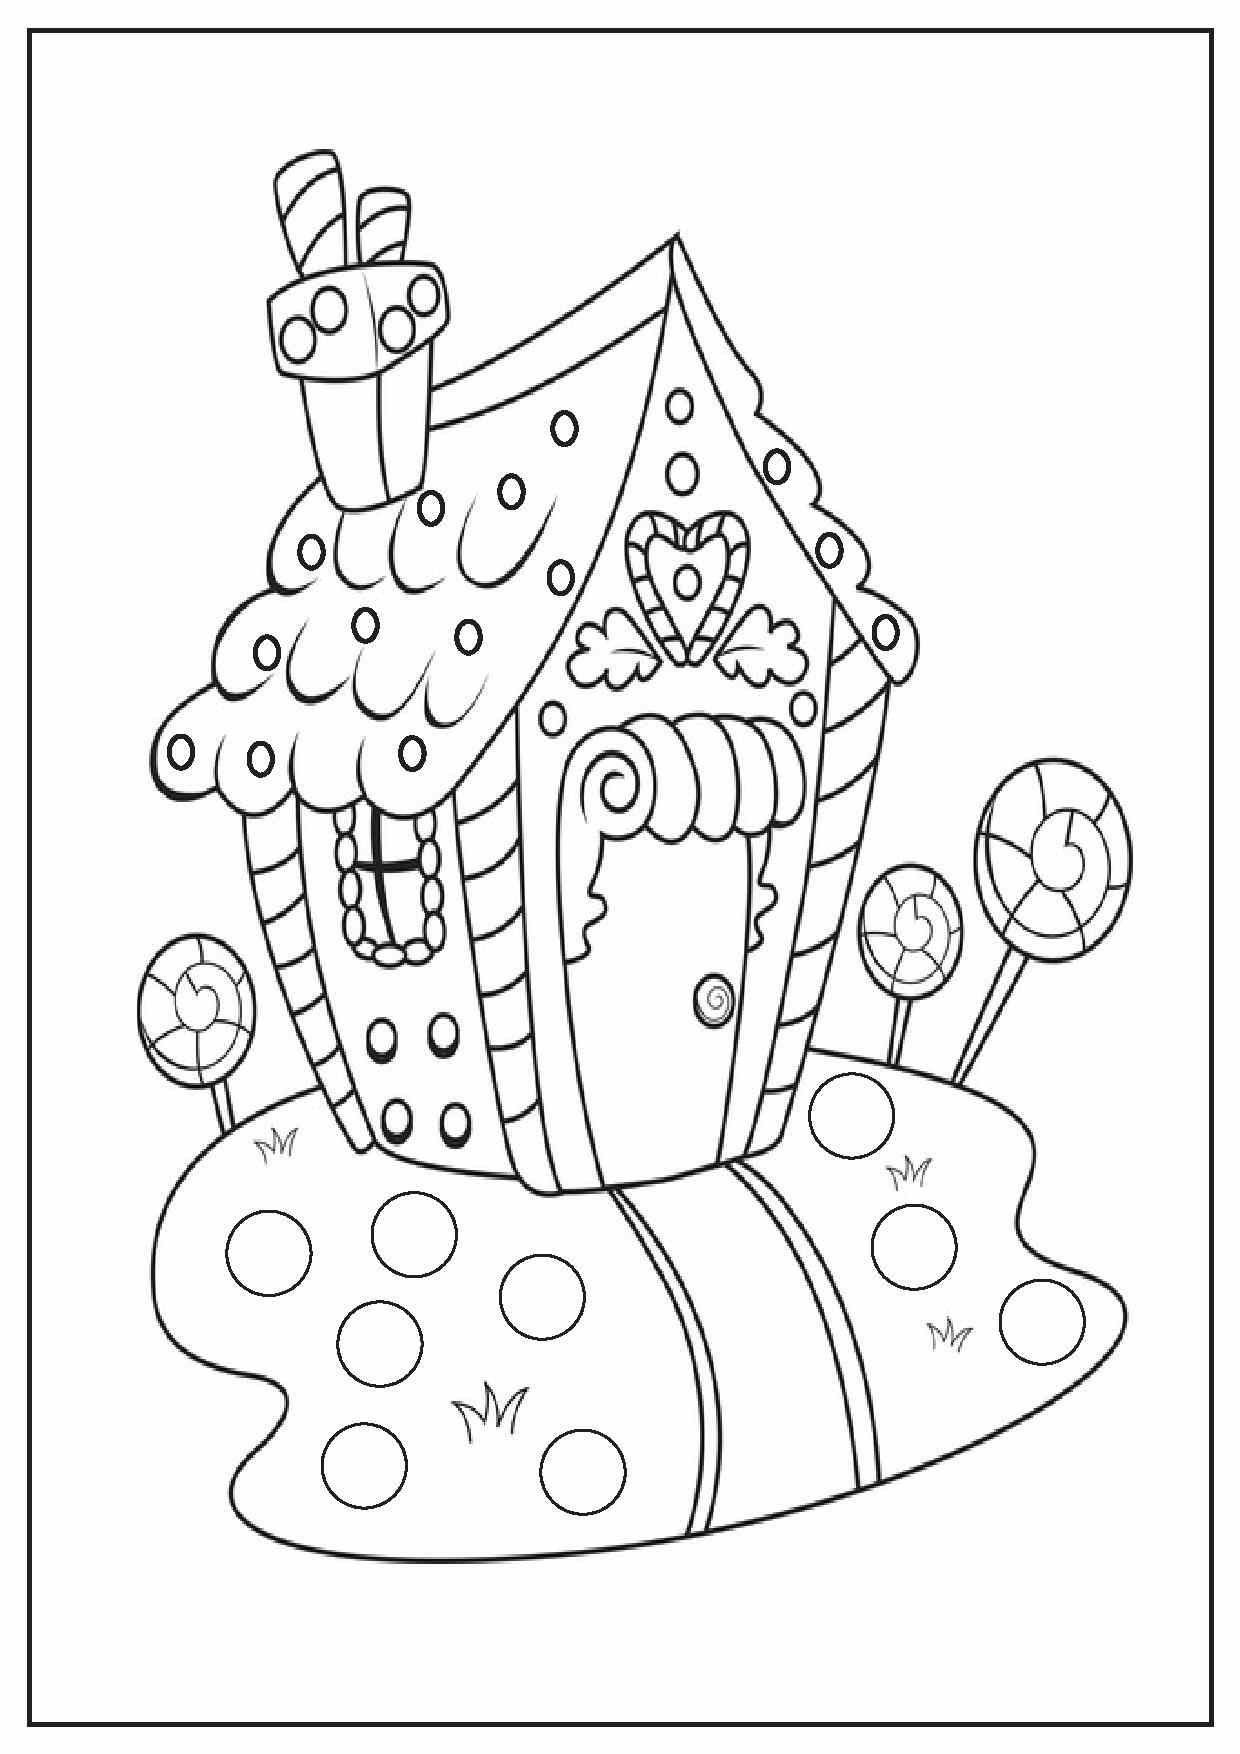 Christmas Coloring Pages Printable Impressive You Can